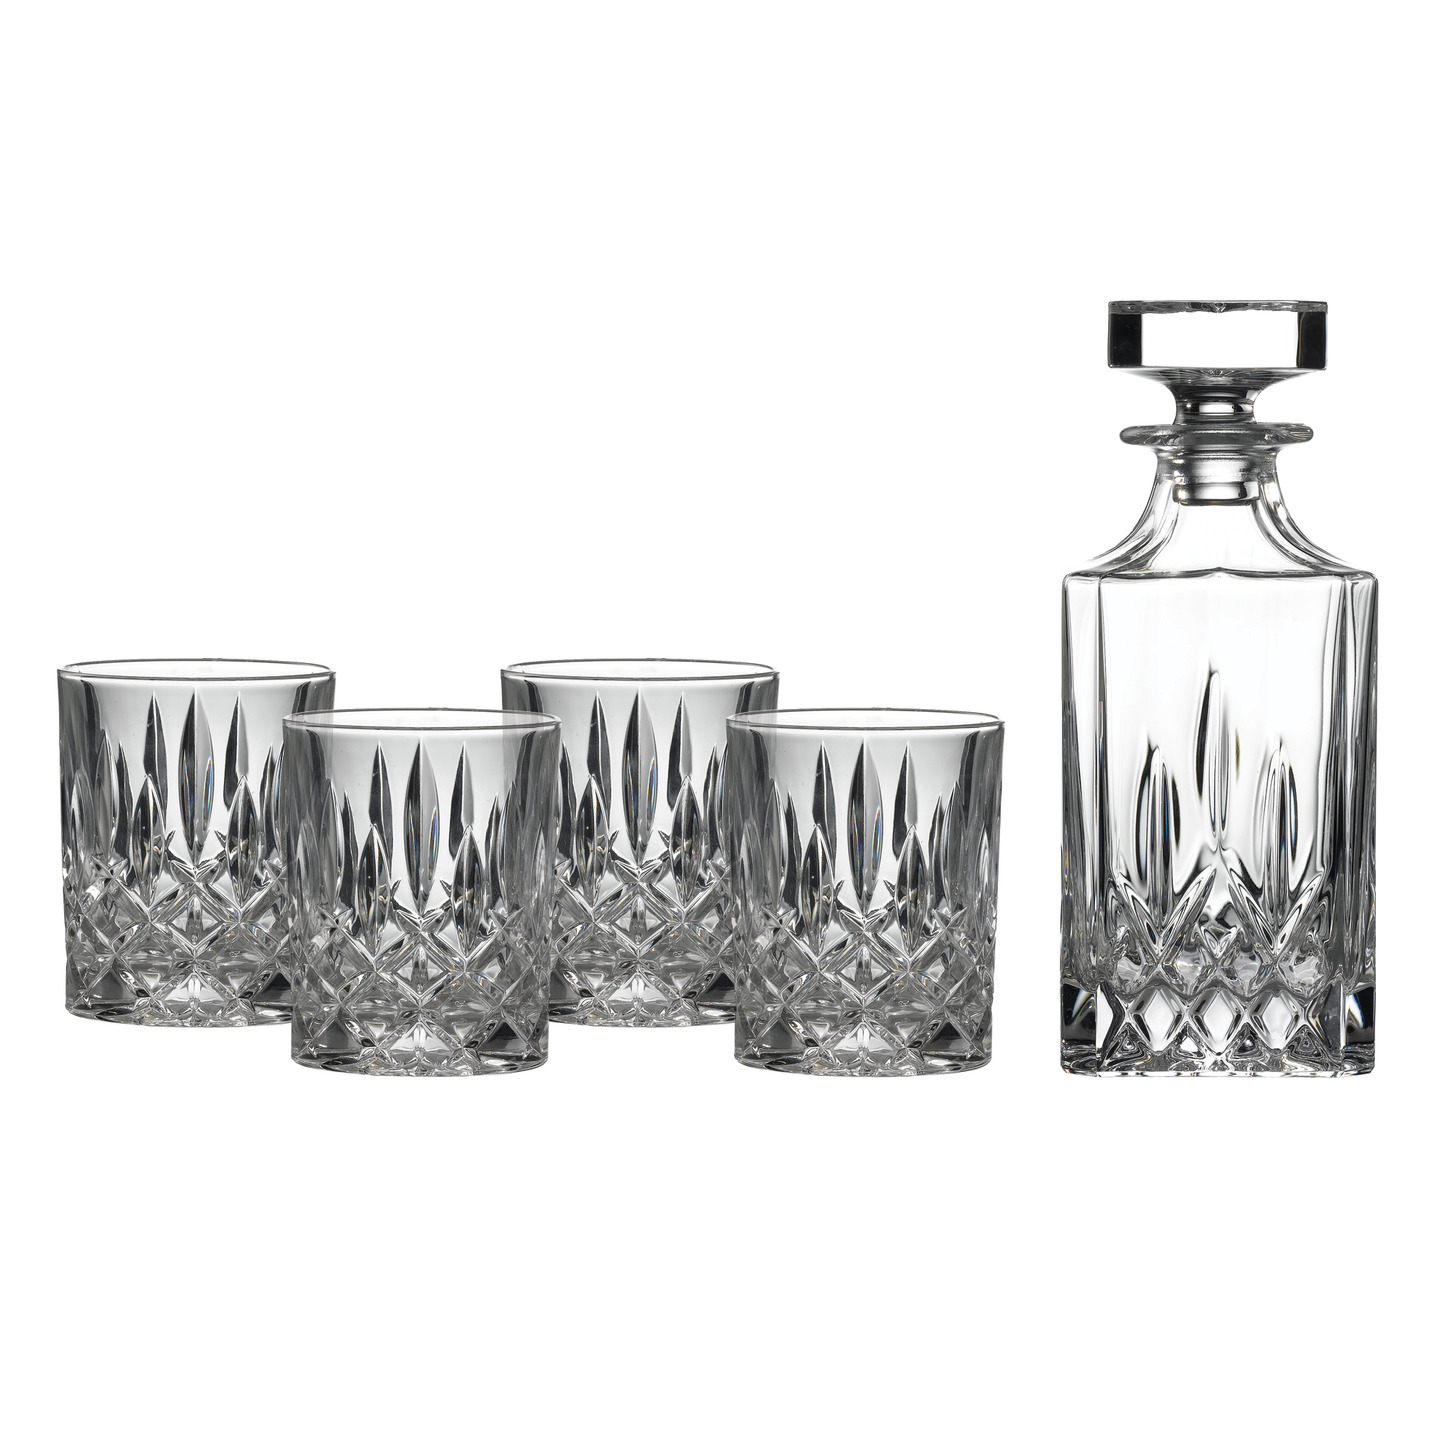 Classy decanter set for dining sets ideas with crystal decanter set